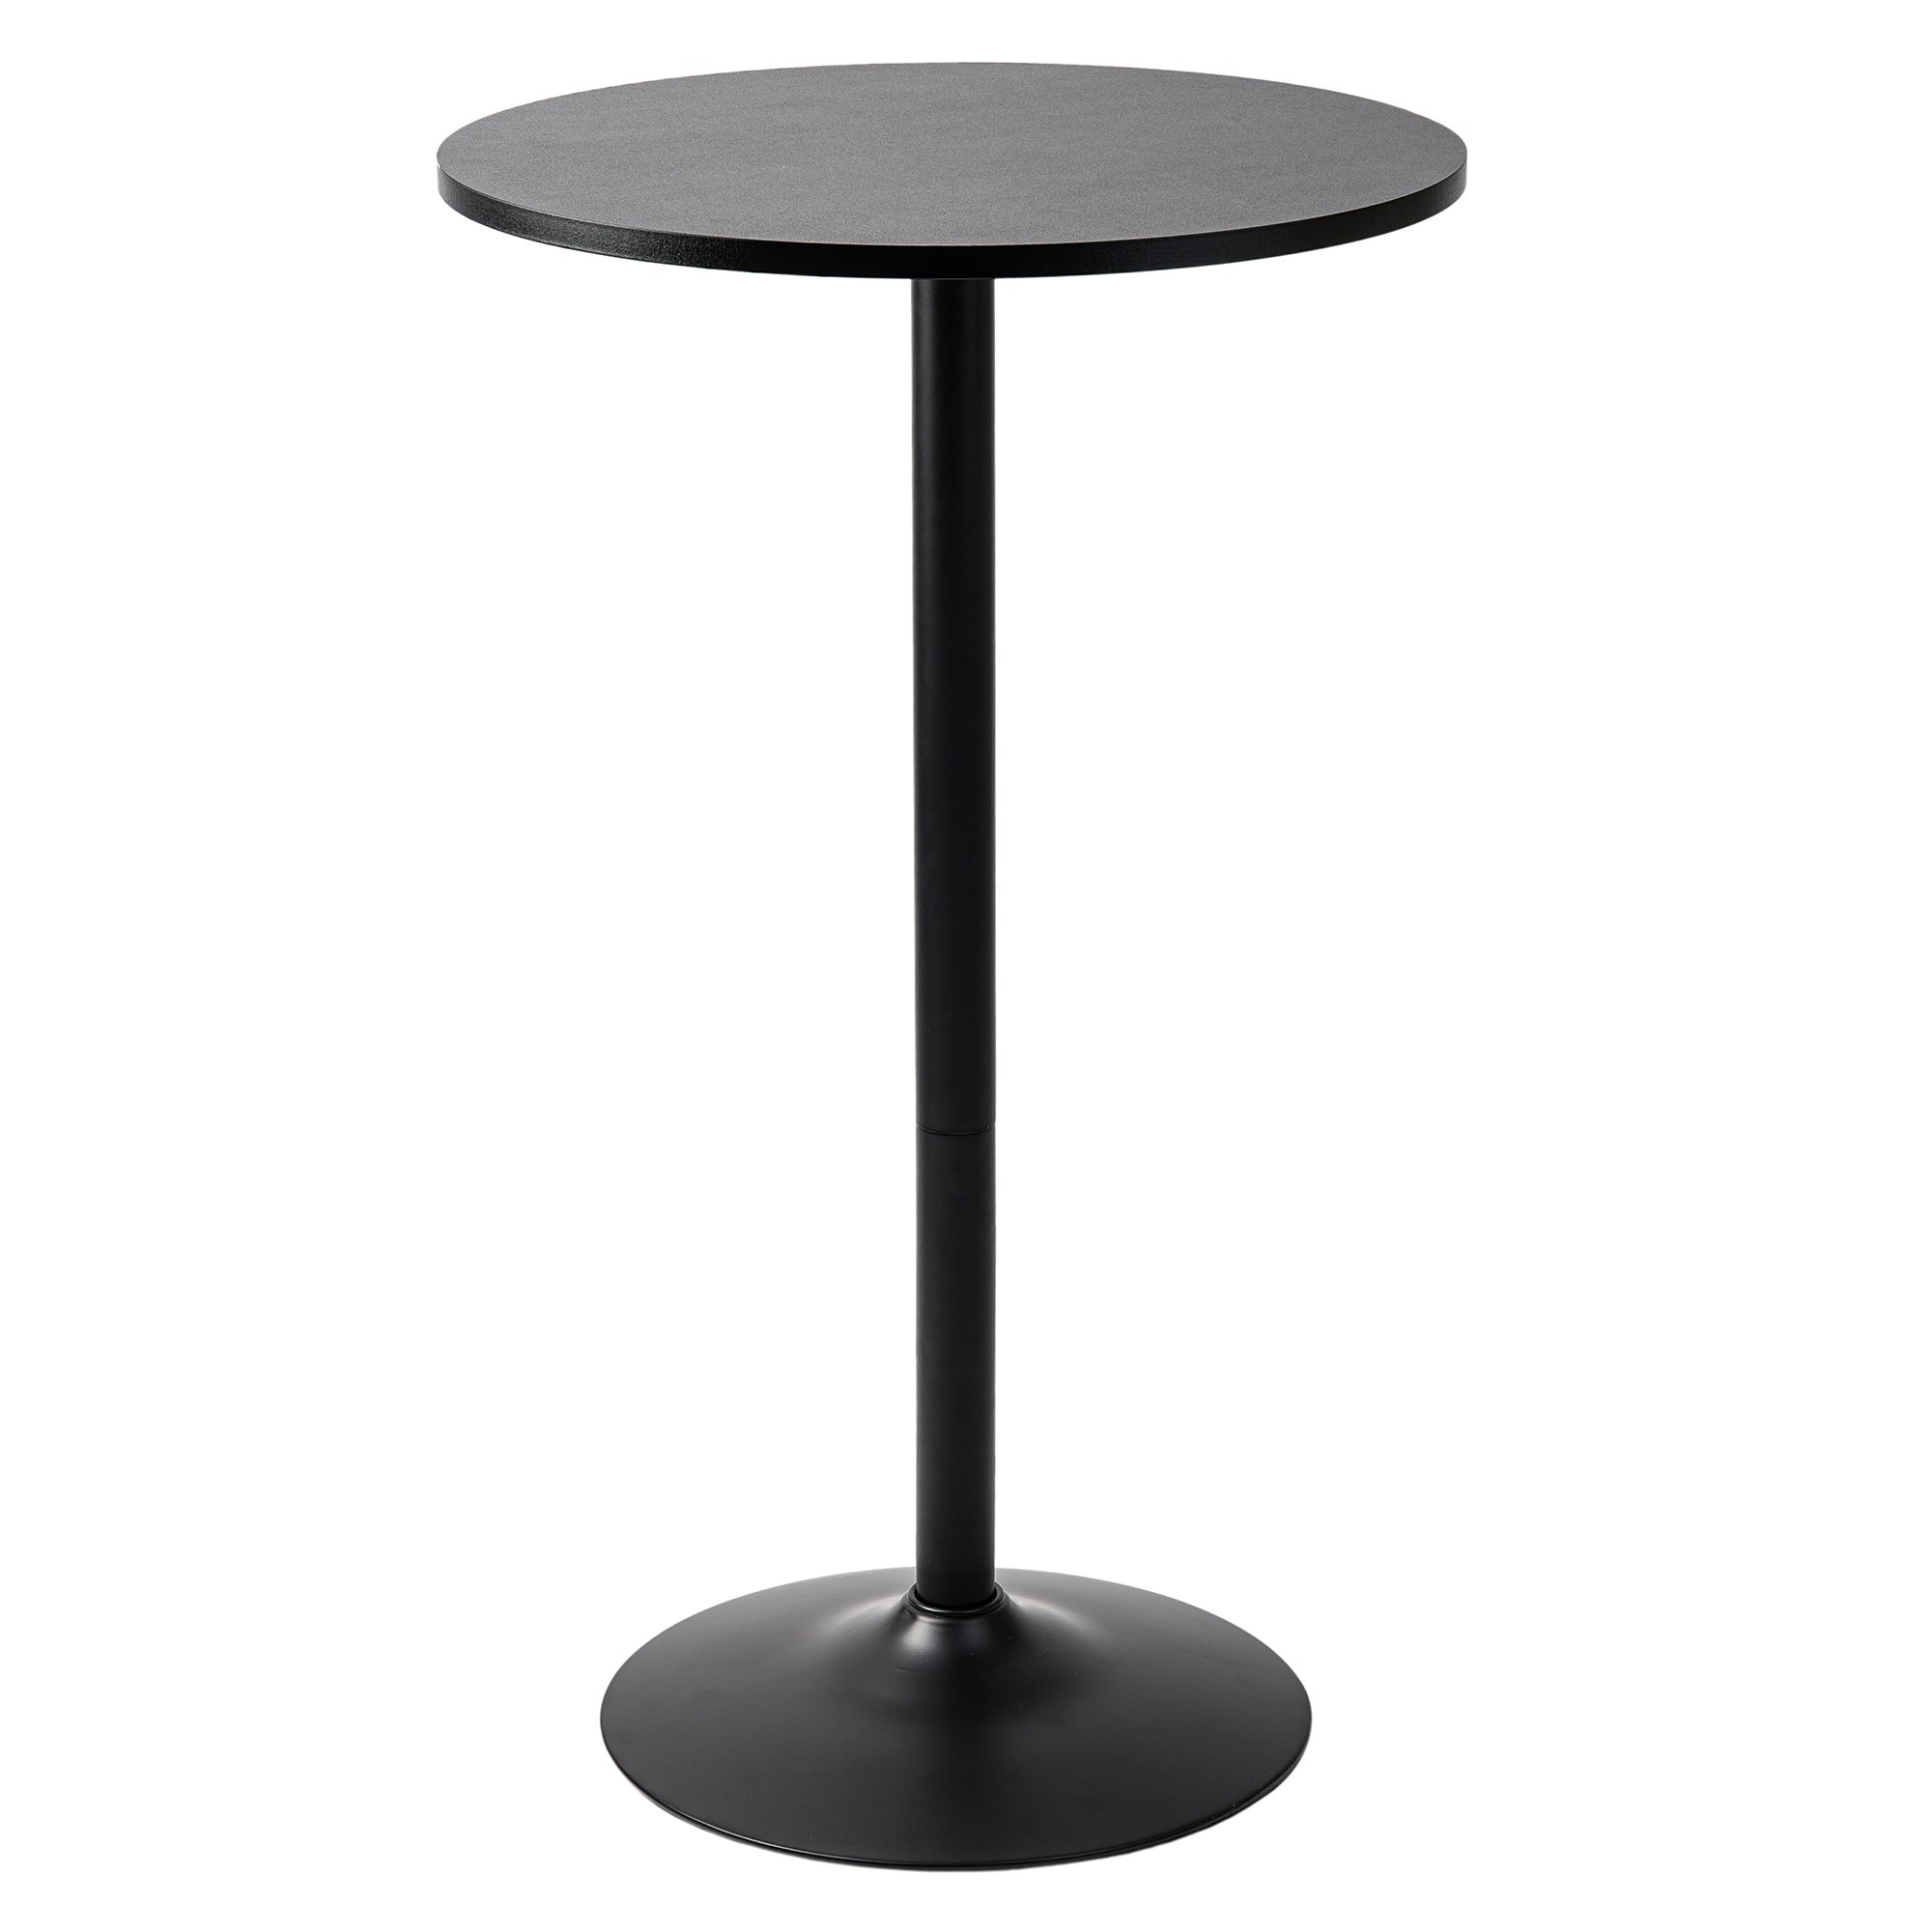 Pearington PEAR-0098 Long and Small, Single Round Cocktail Bar, Pub, and Bistro High Table with Black Top and Base, 1 Pack, by Pearington